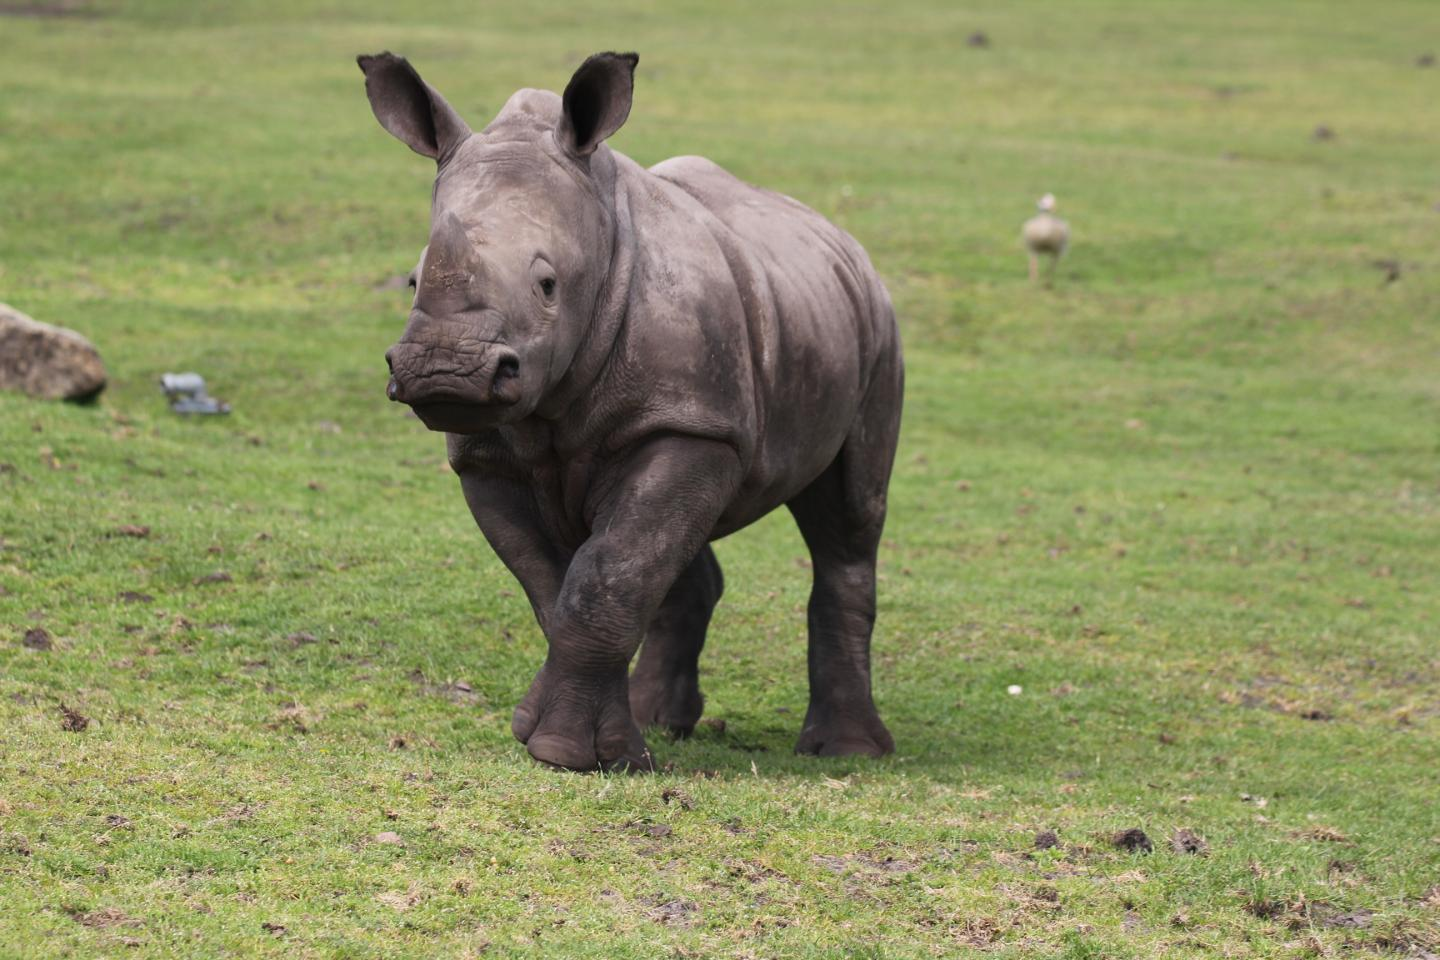 Young Southern White Rhinos May Produce Four Distinct, Context-Dependent Calls